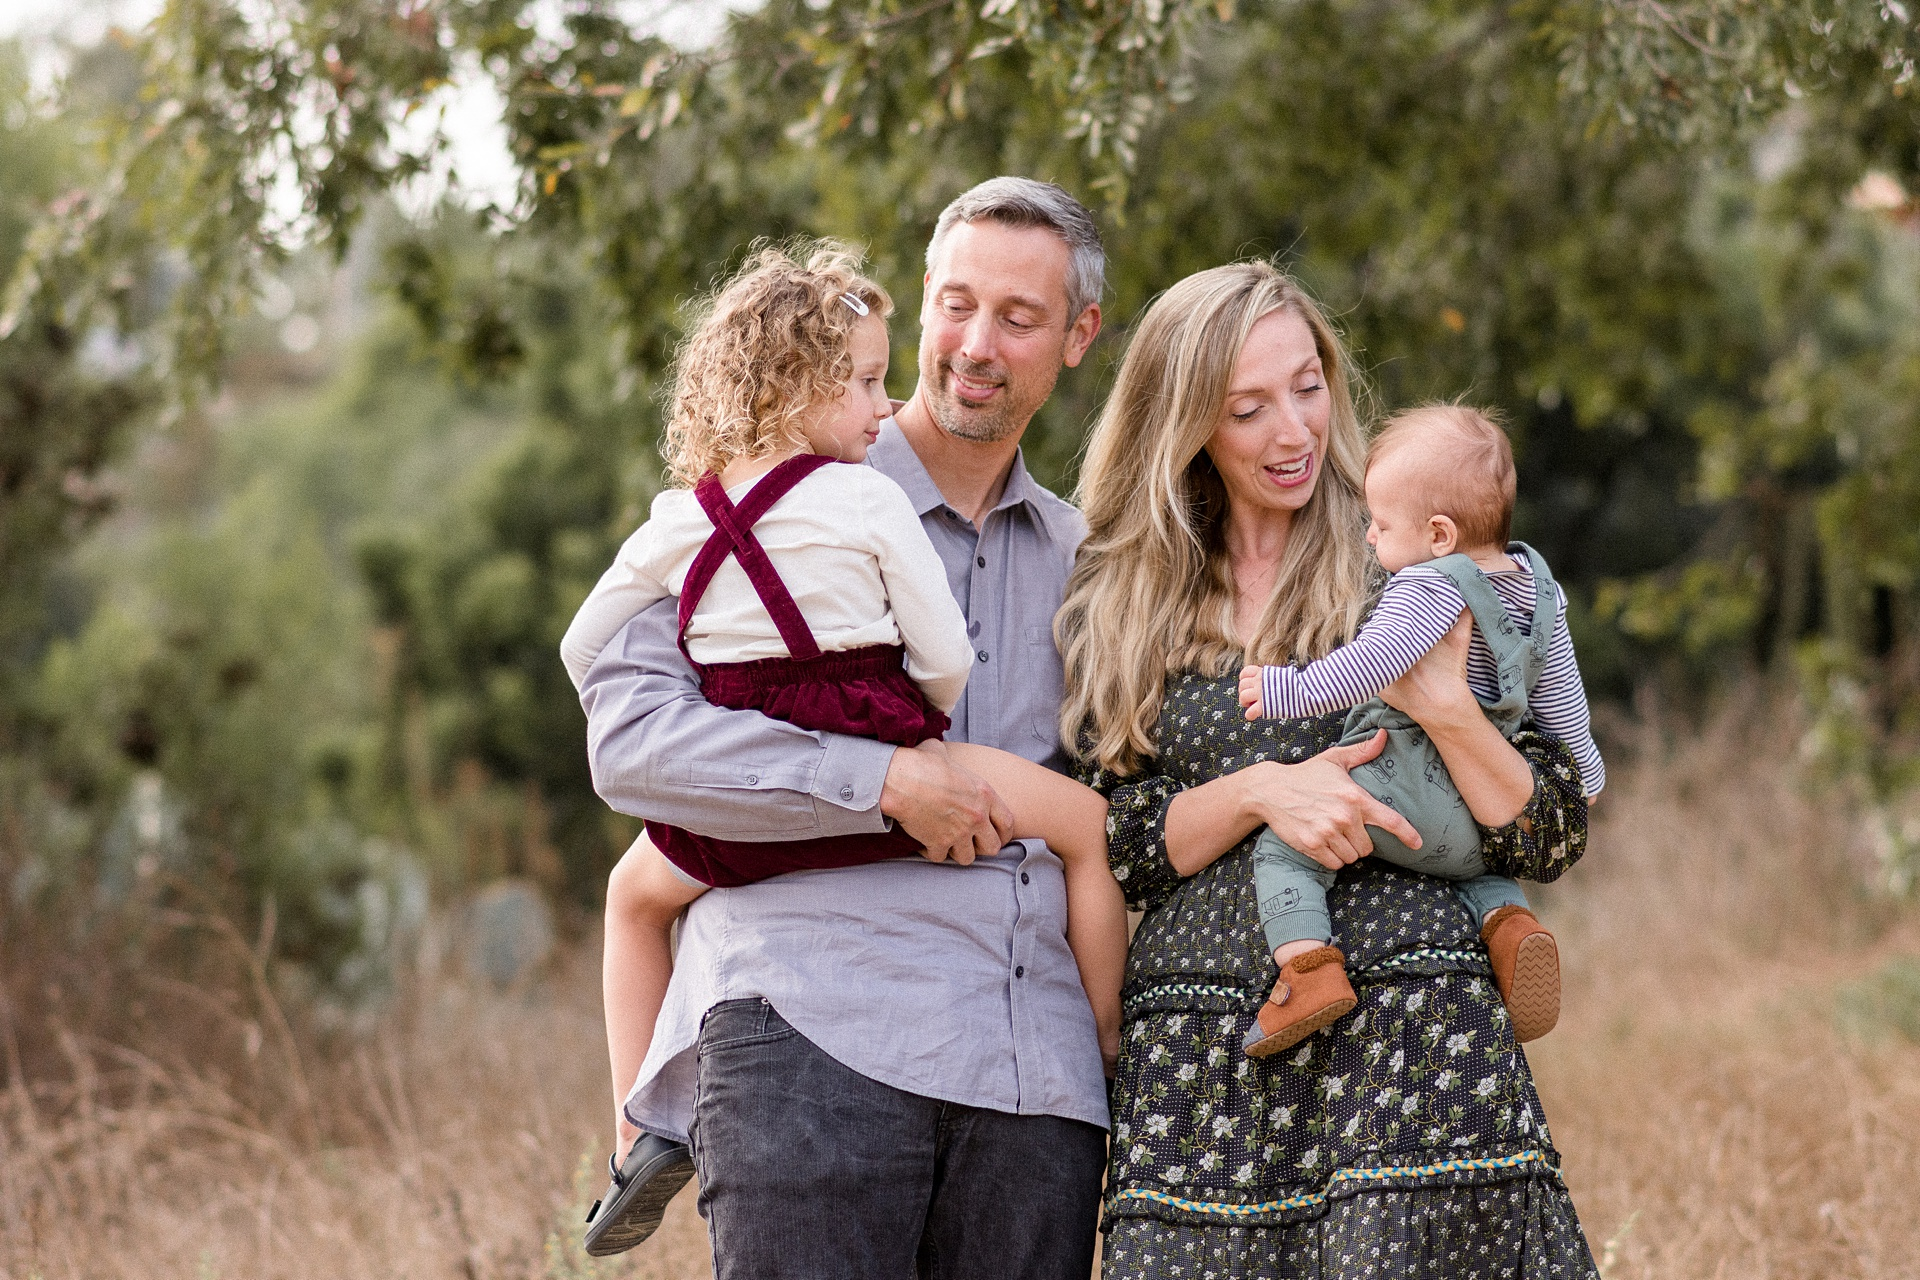 San Diego Family Photo Parents holding little girl and baby boy